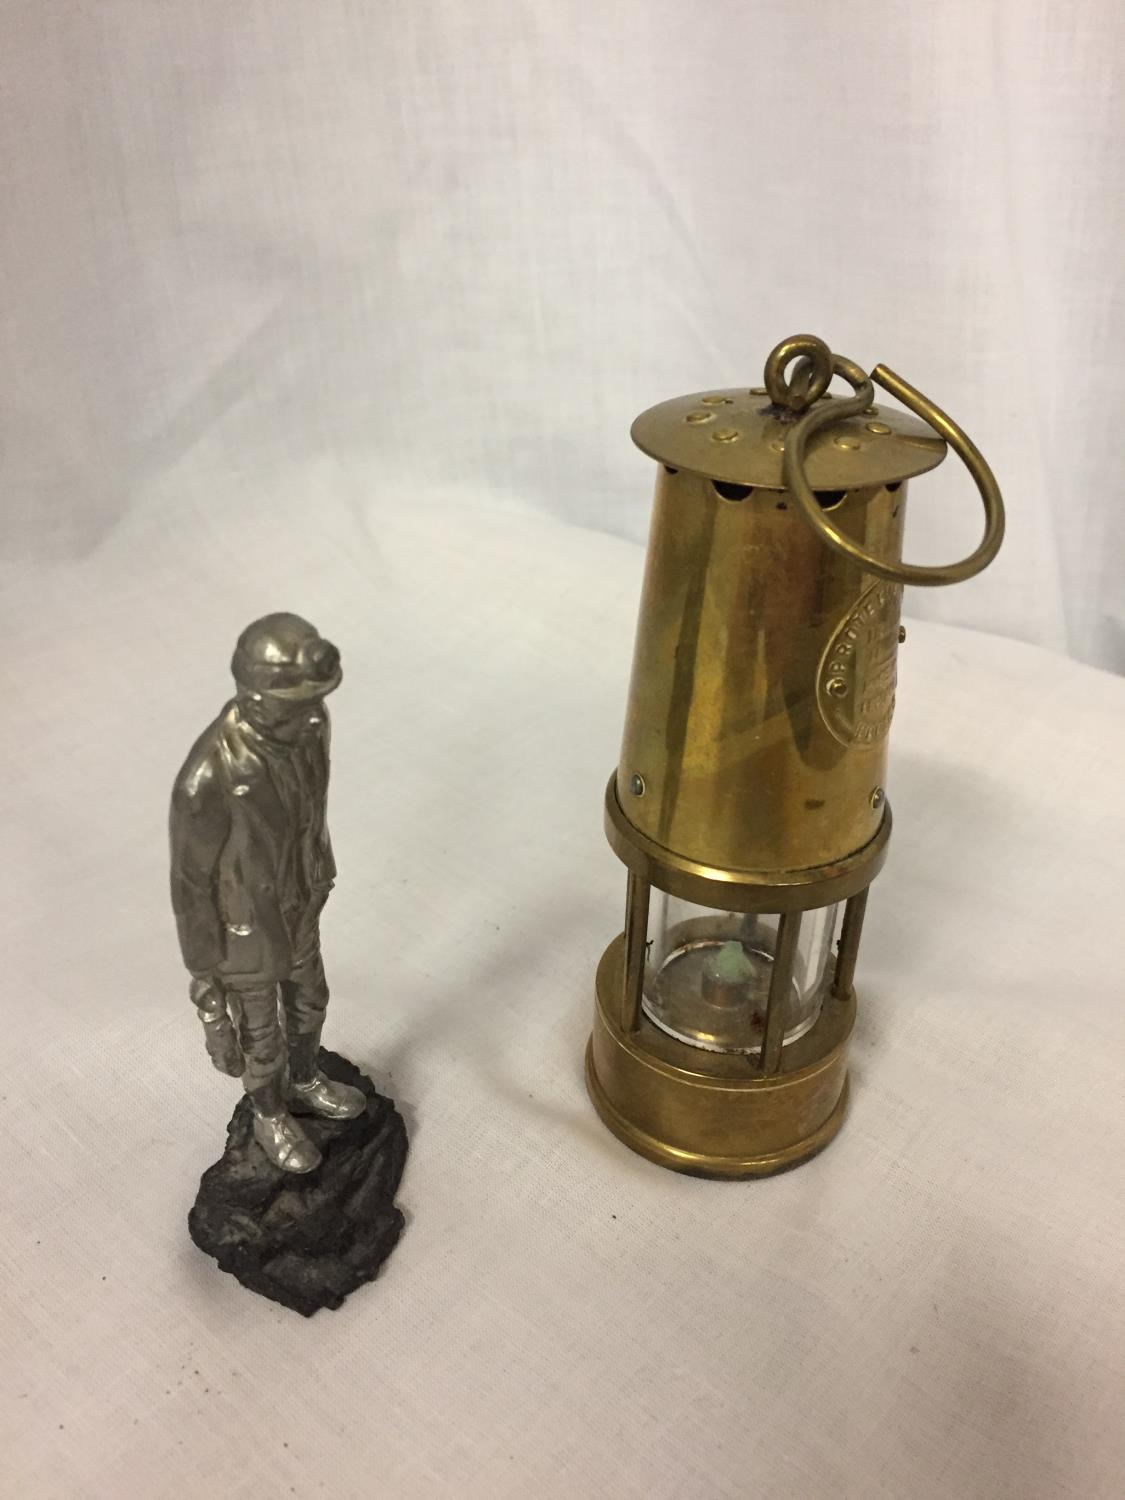 A BRASS MINATURE MINERS PROTECTION LAMP ECCLES AND A FIGURE OF A MINER - Image 3 of 3